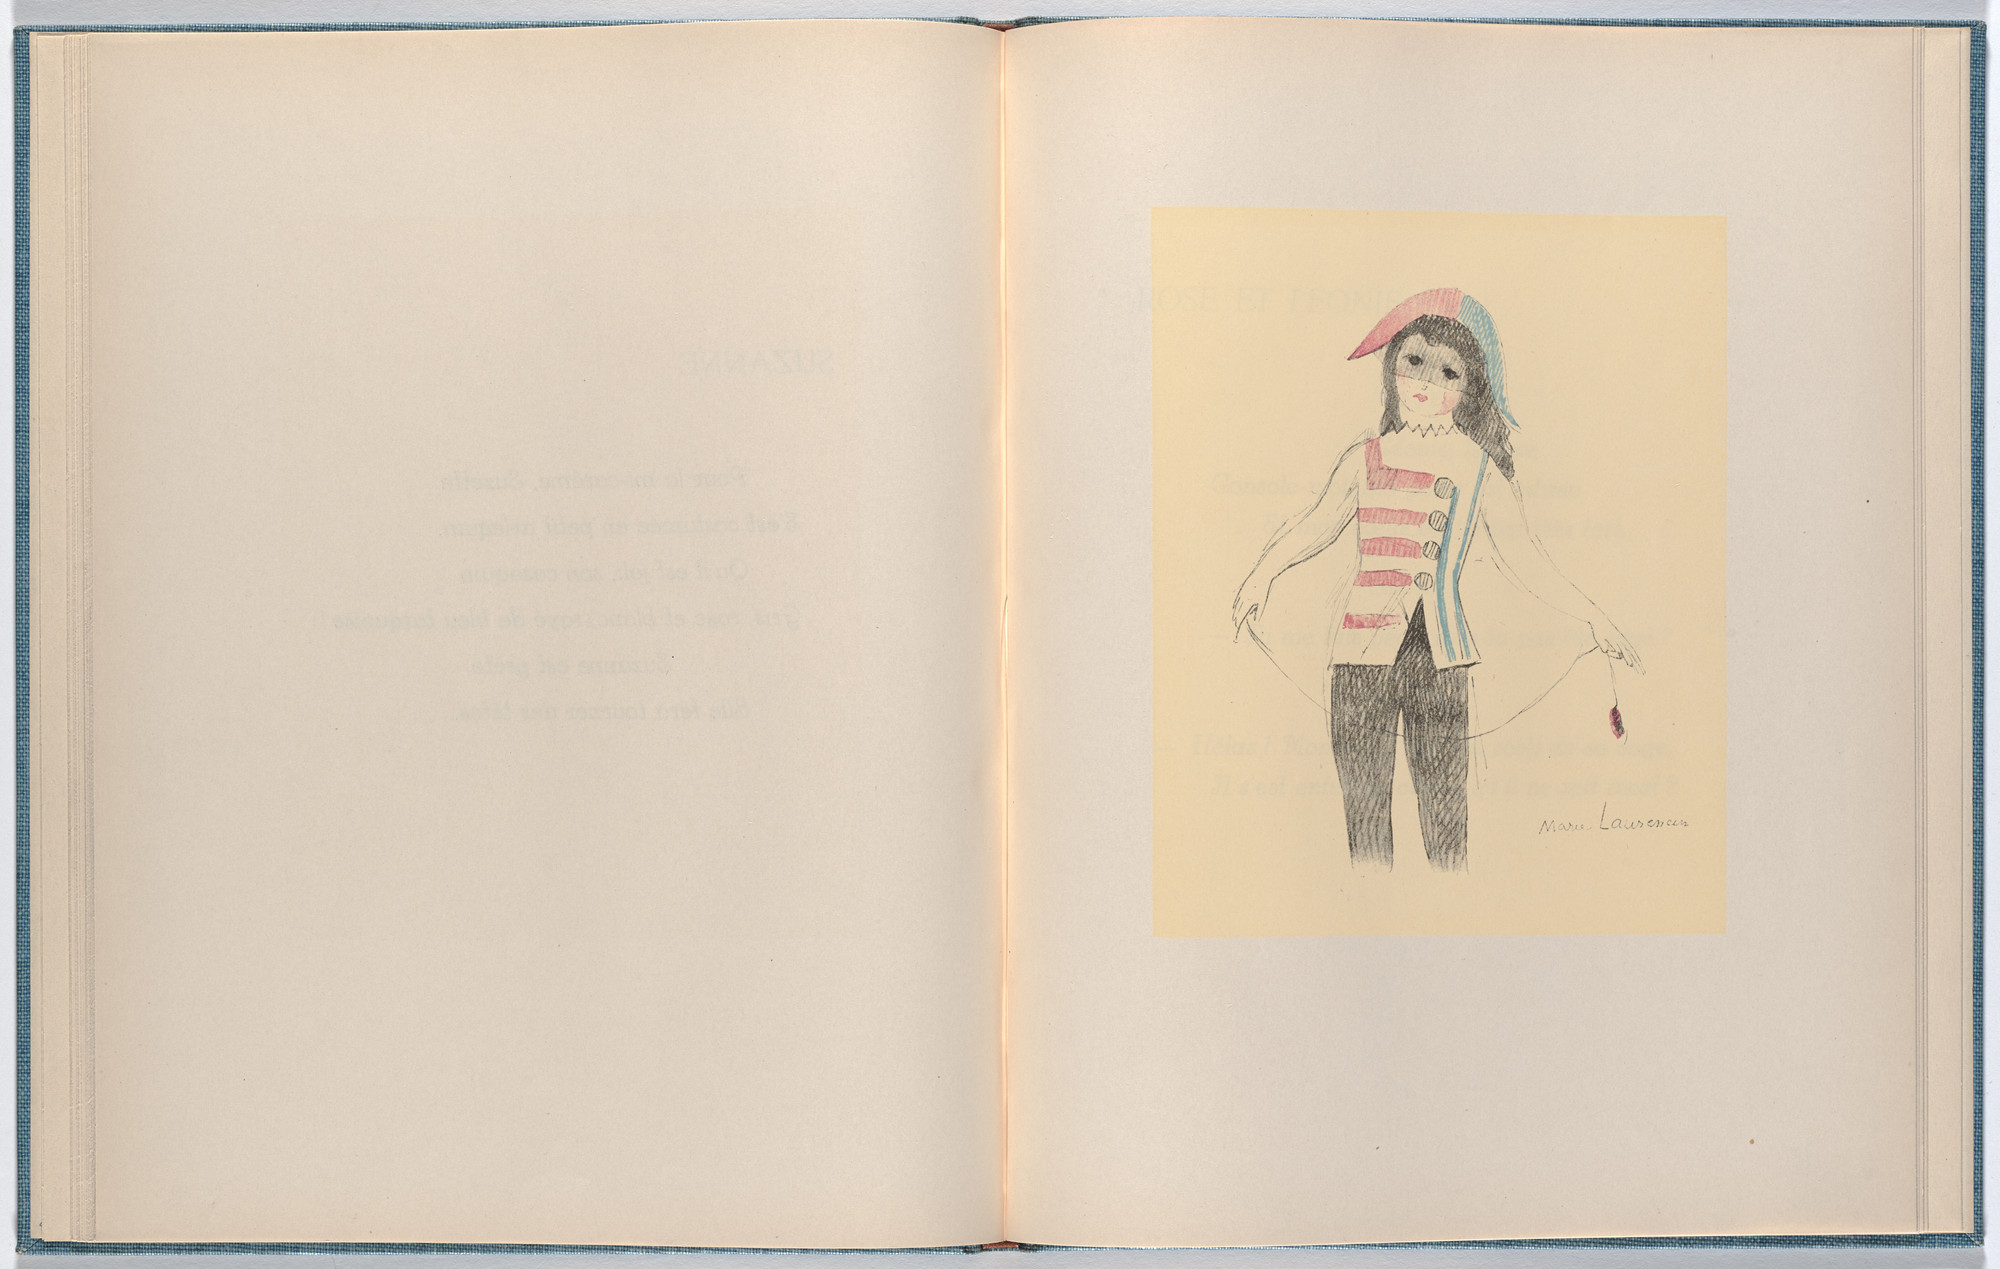 Marie Laurencin. Plate (folio 22) from Les Petites filles (The Little Girls). 1942